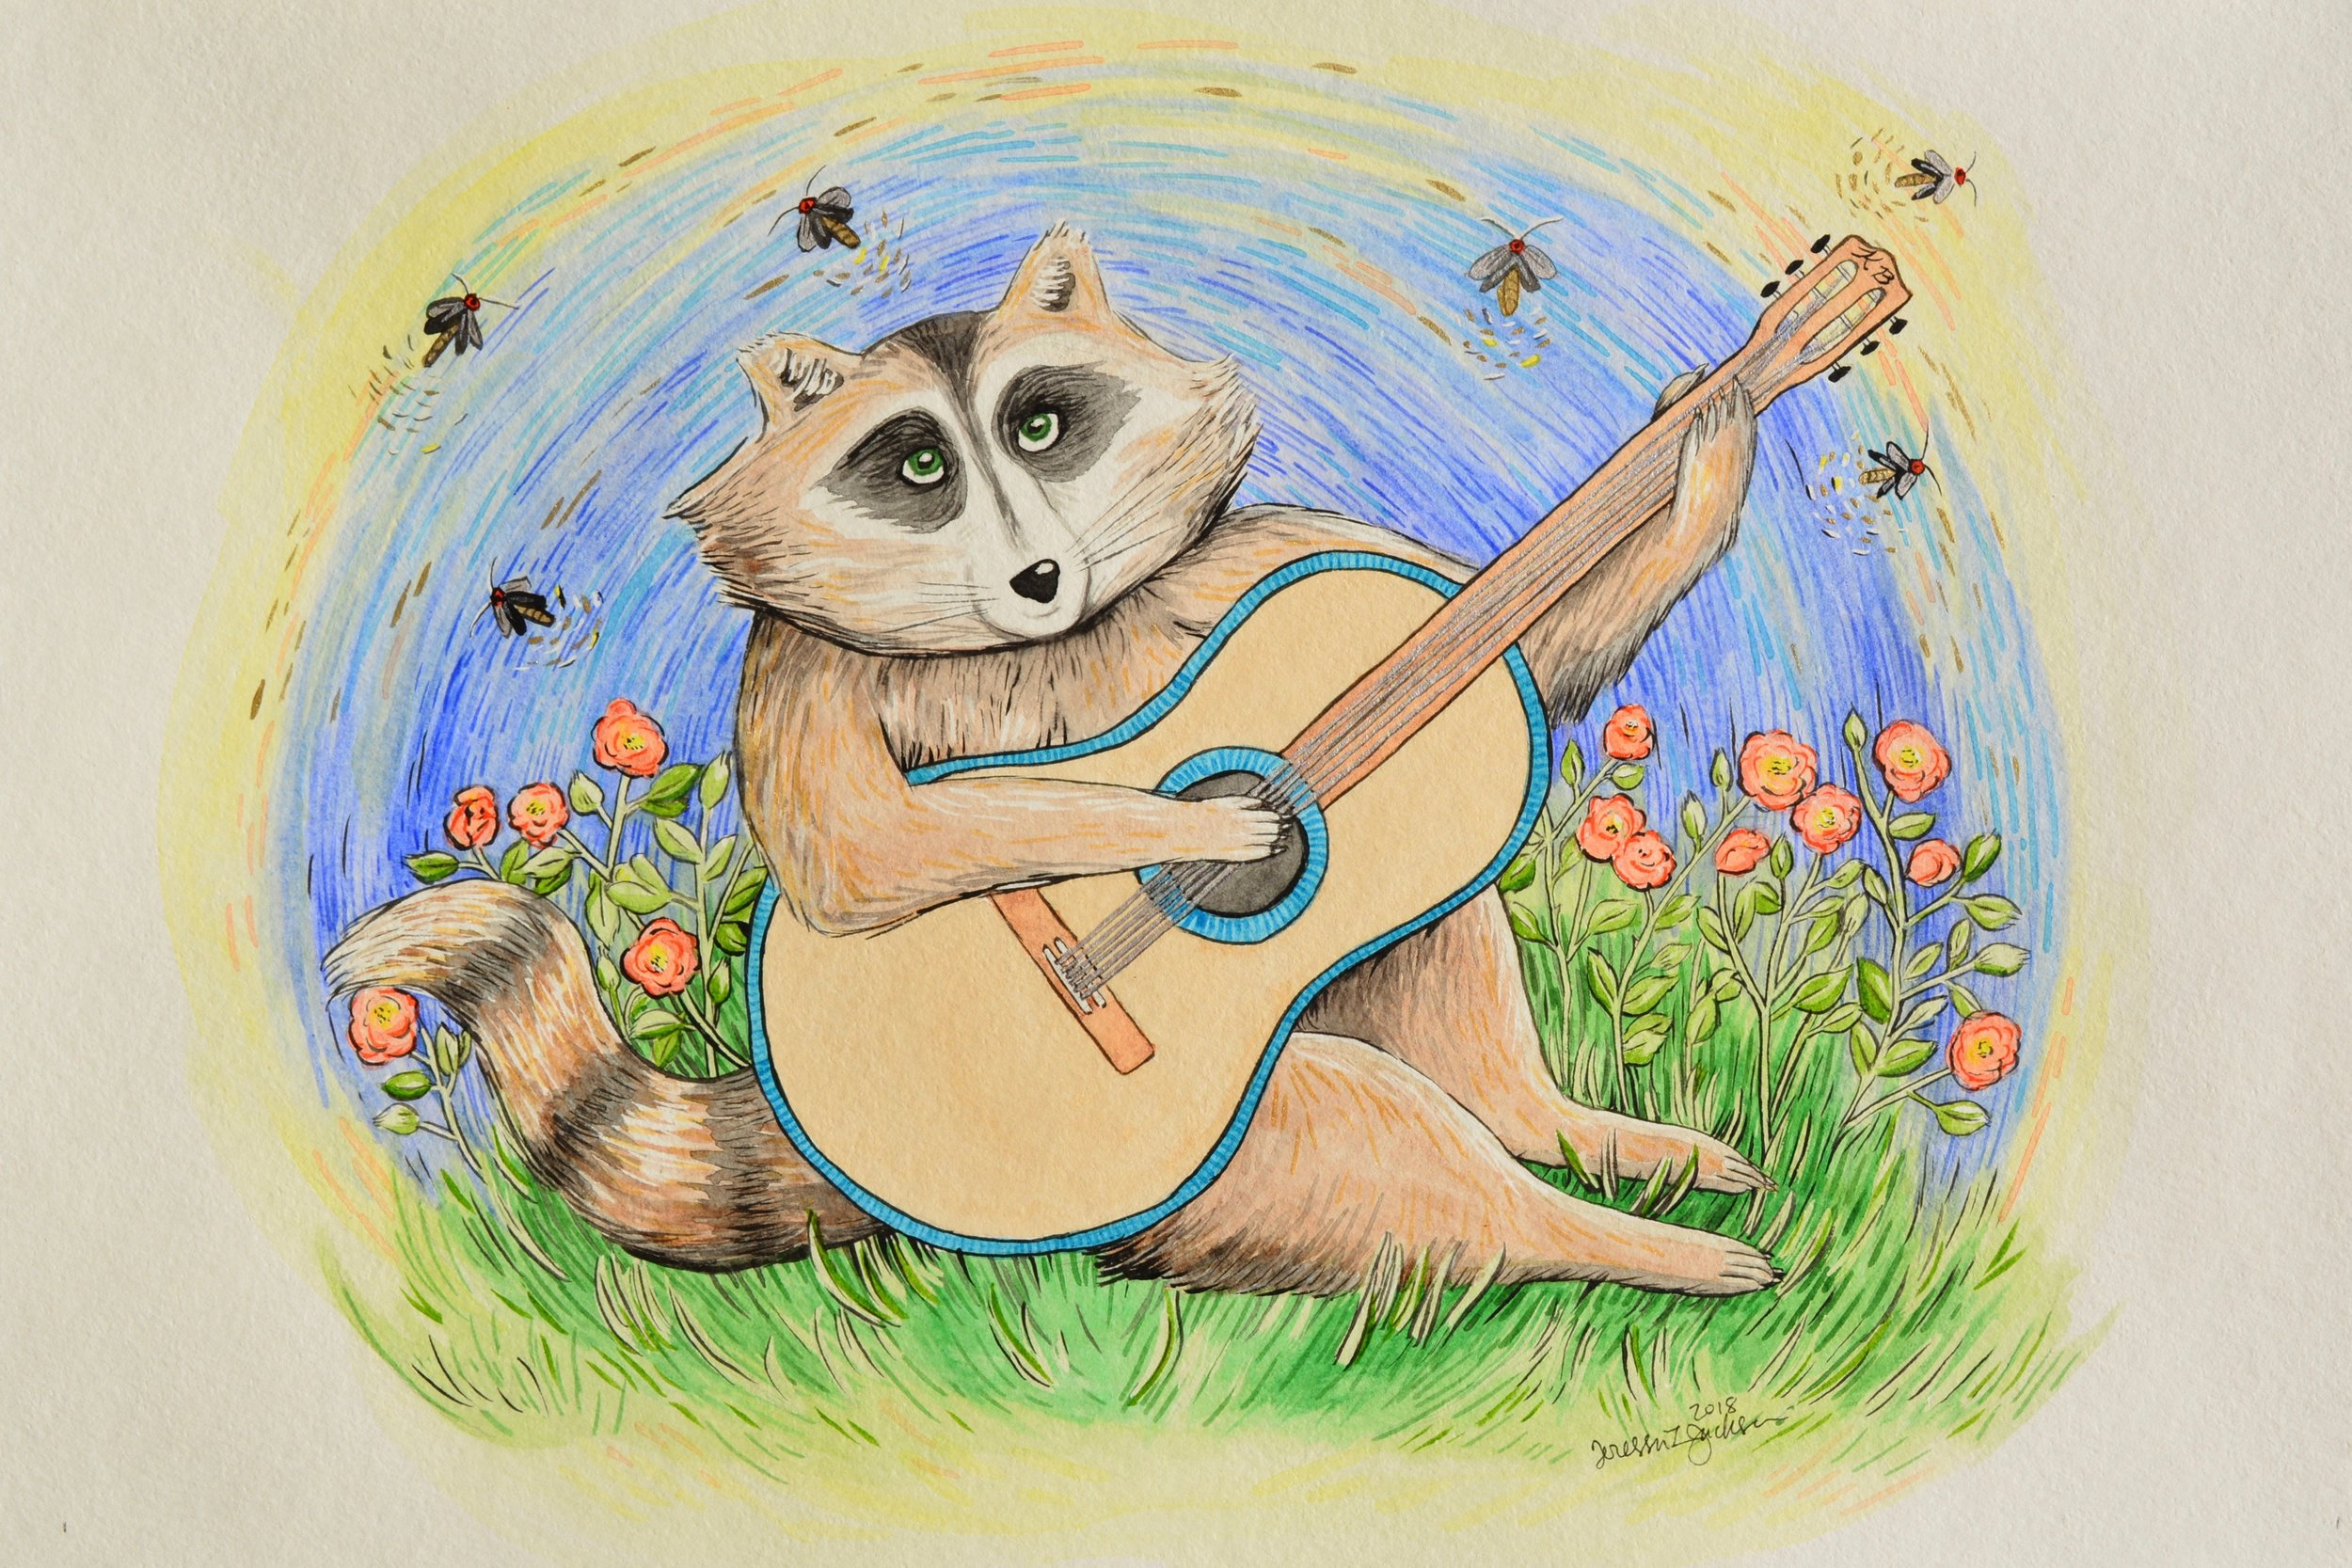 Coonie's Reprise (special gift for my friend's nursery)